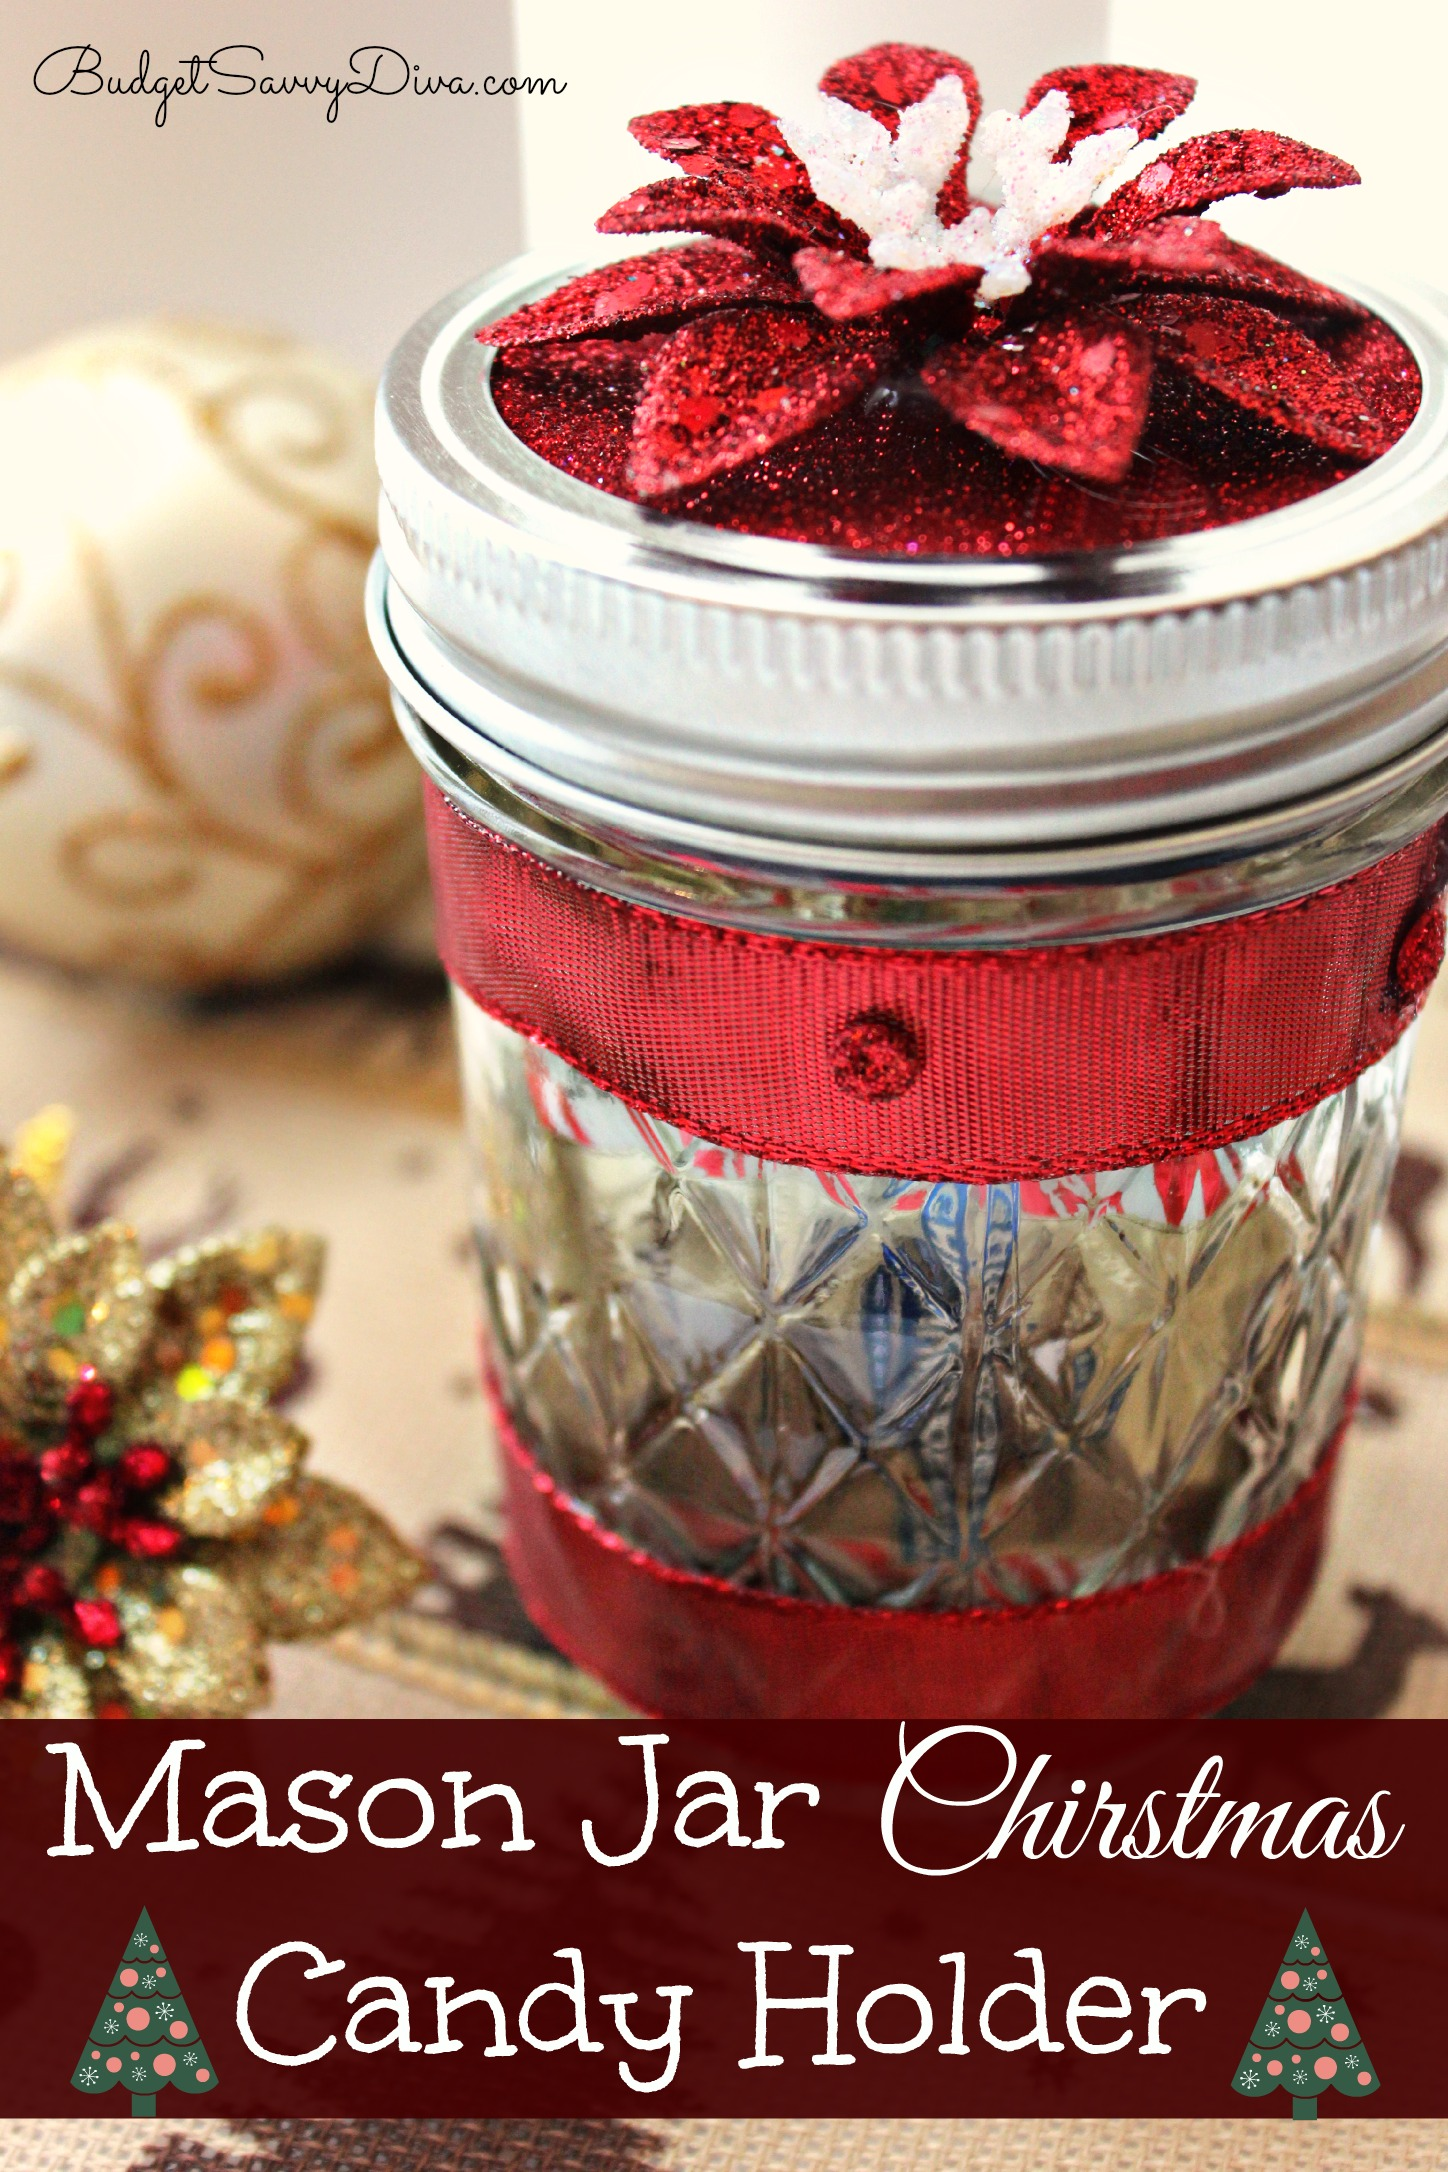 Mason Jar Christmas Candy Holder Budget Savvy Diva